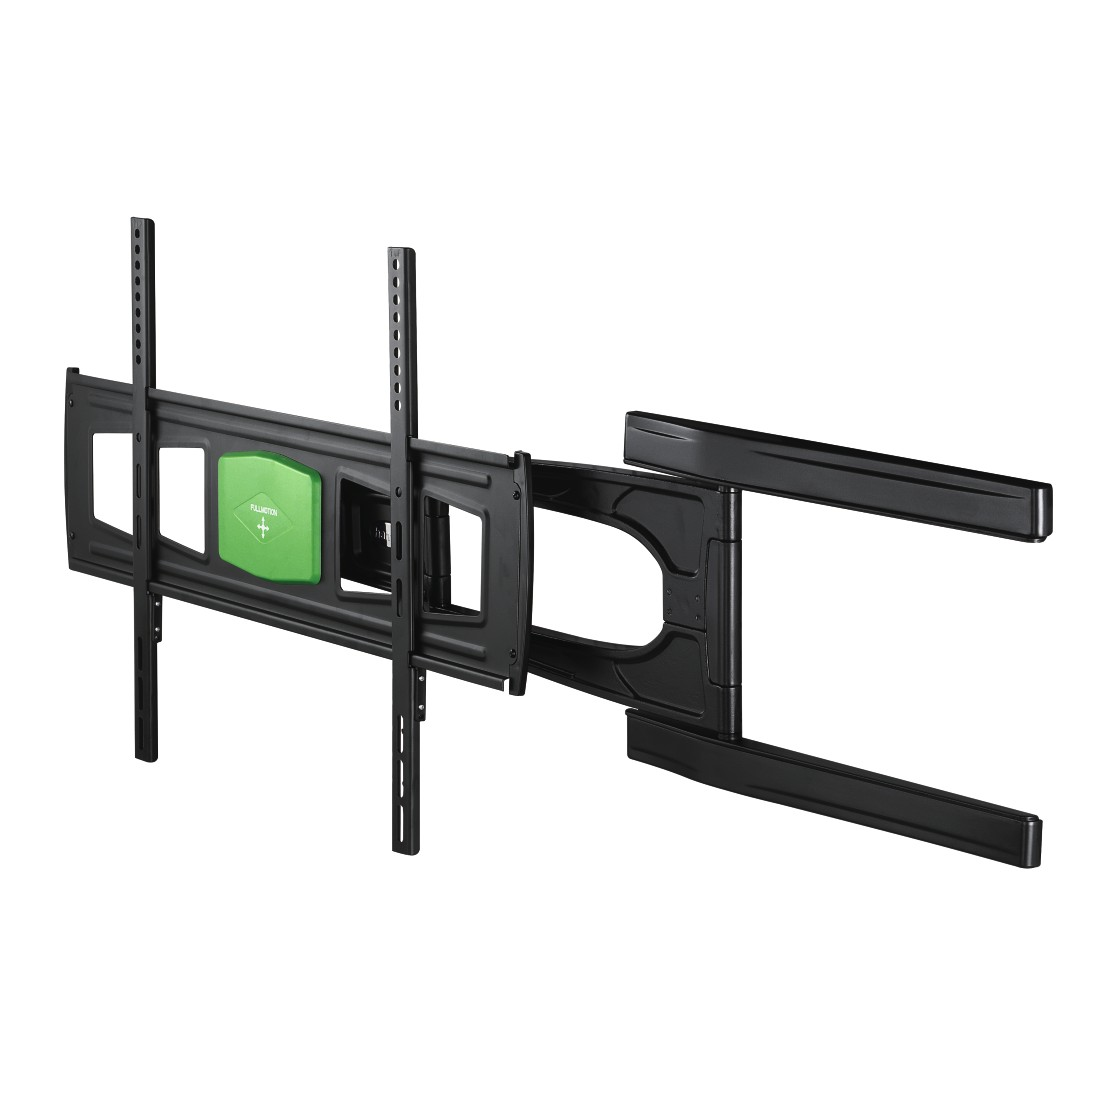 "dex8 High-Res Detail 8 - Hama, FULLMOTION TV Wall Bracket, 3 Stars, 165cm (65""), 2 Arm, black"